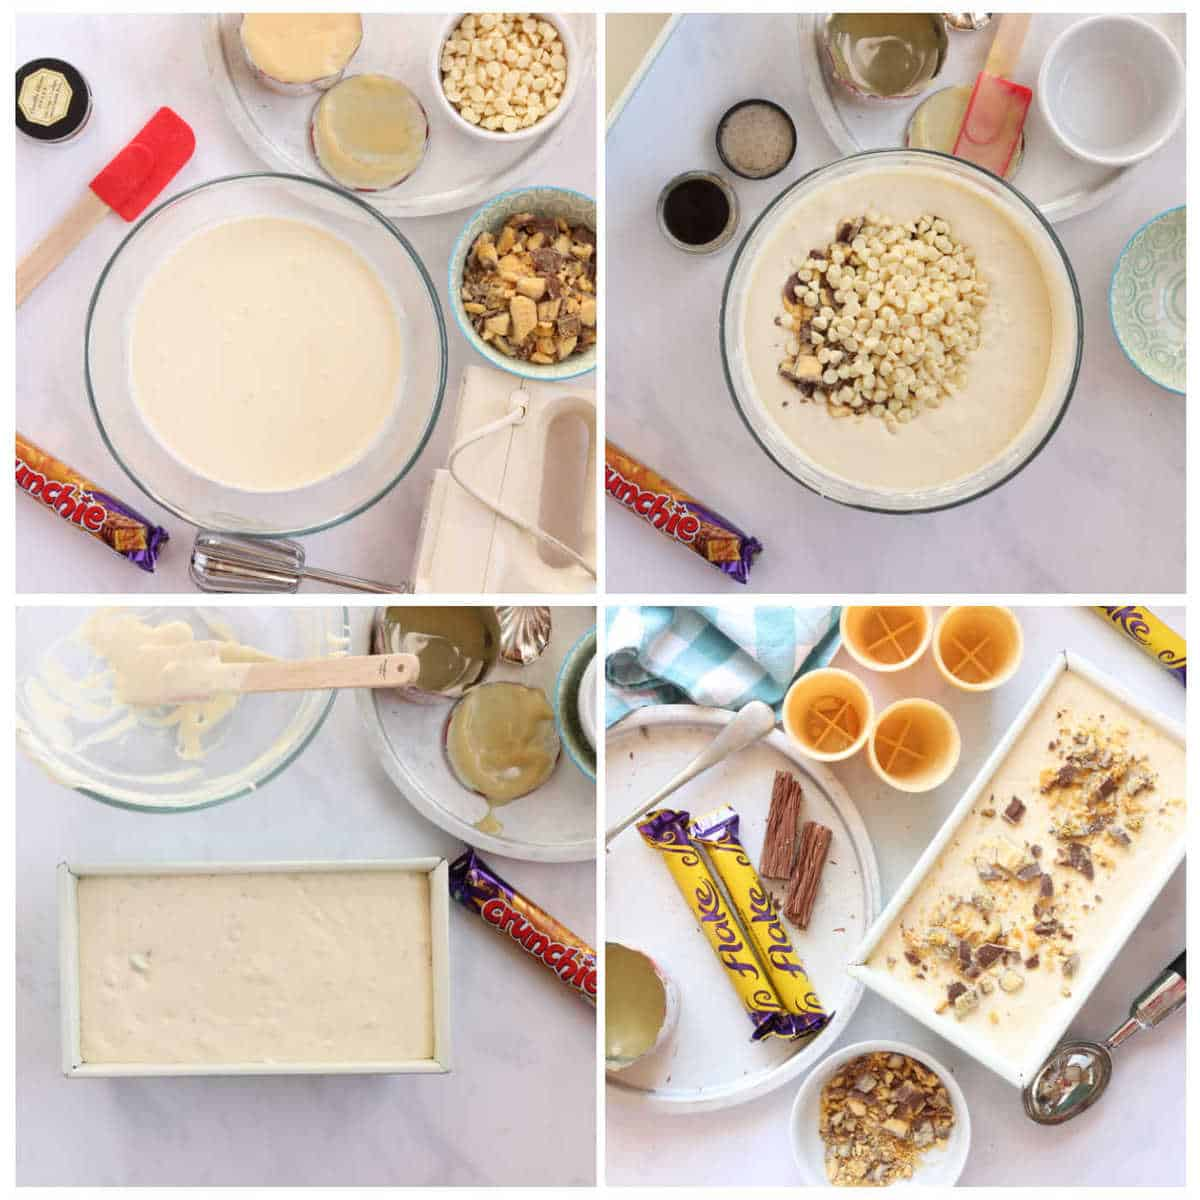 Step-by-step photo instructions for making the recipe